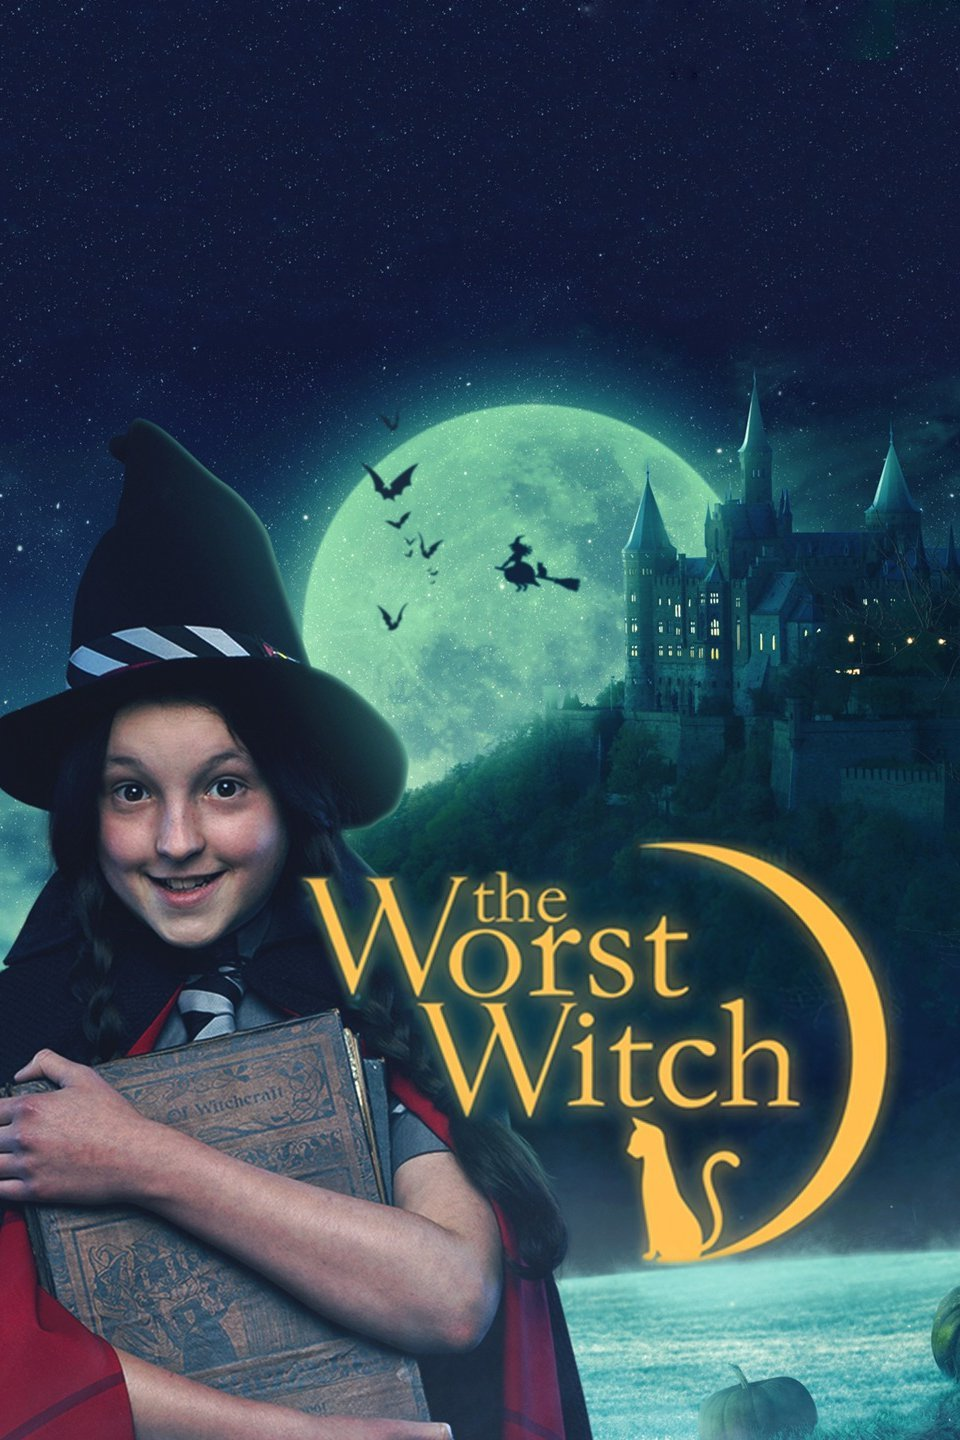 The Worst Witch S01 E11